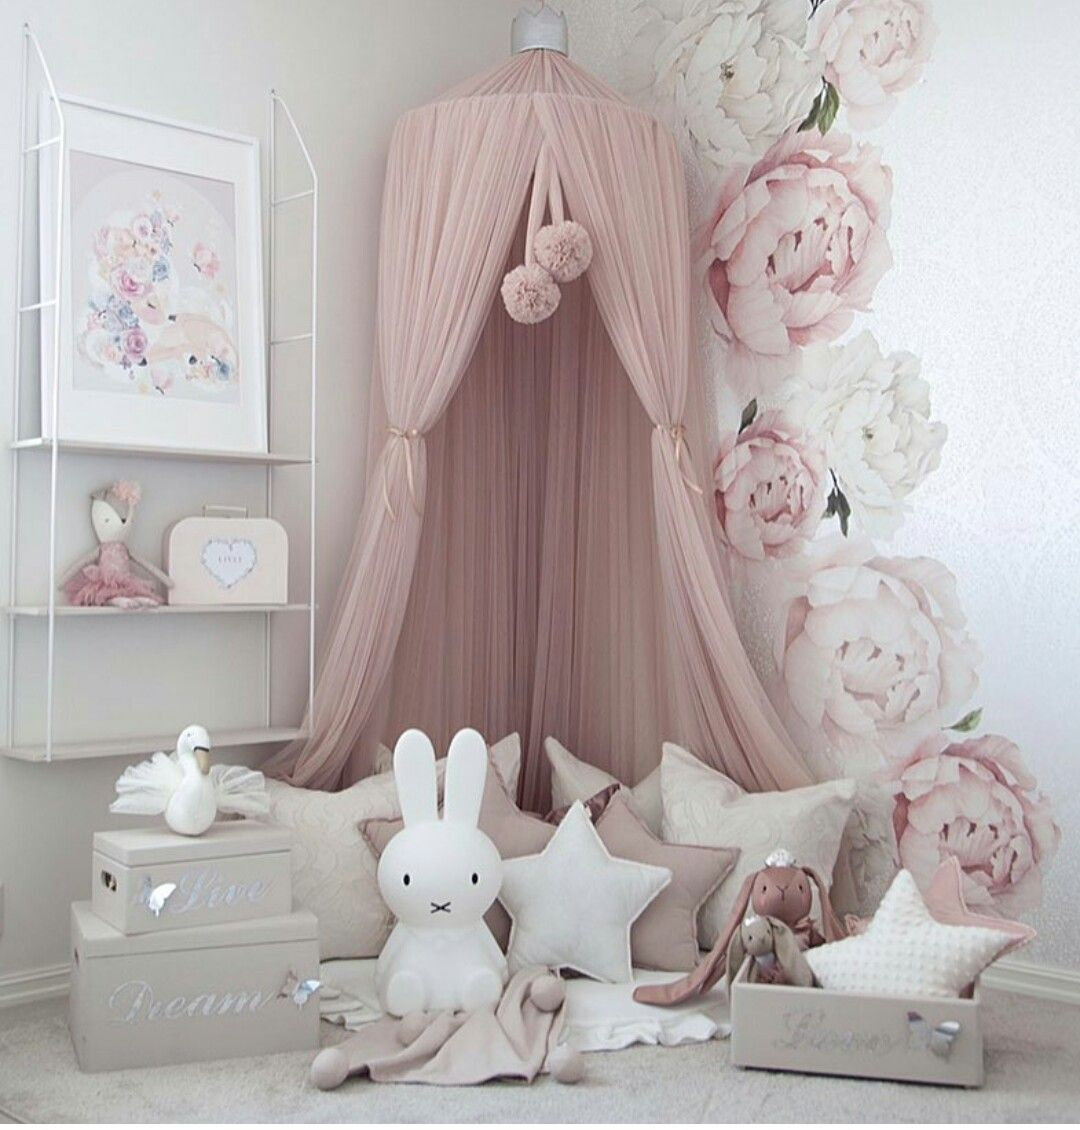 Beautiful - very suitable for girl's bedroom or even a corner in baby's room. It certainly has a calming effect. #toddlerrooms